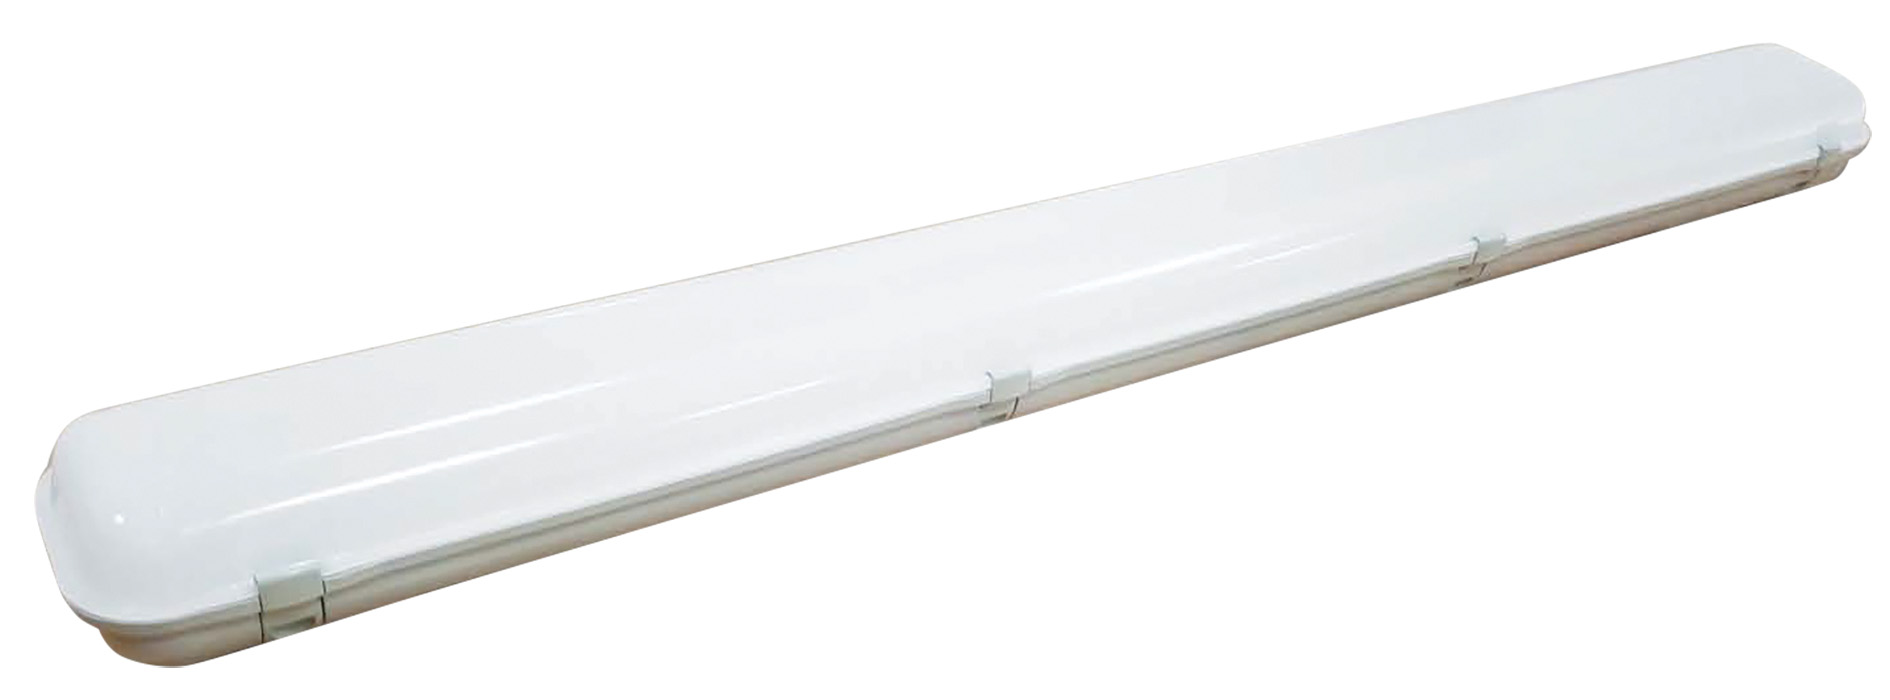 ORR258-1574EO3S 58W LED Batten Light